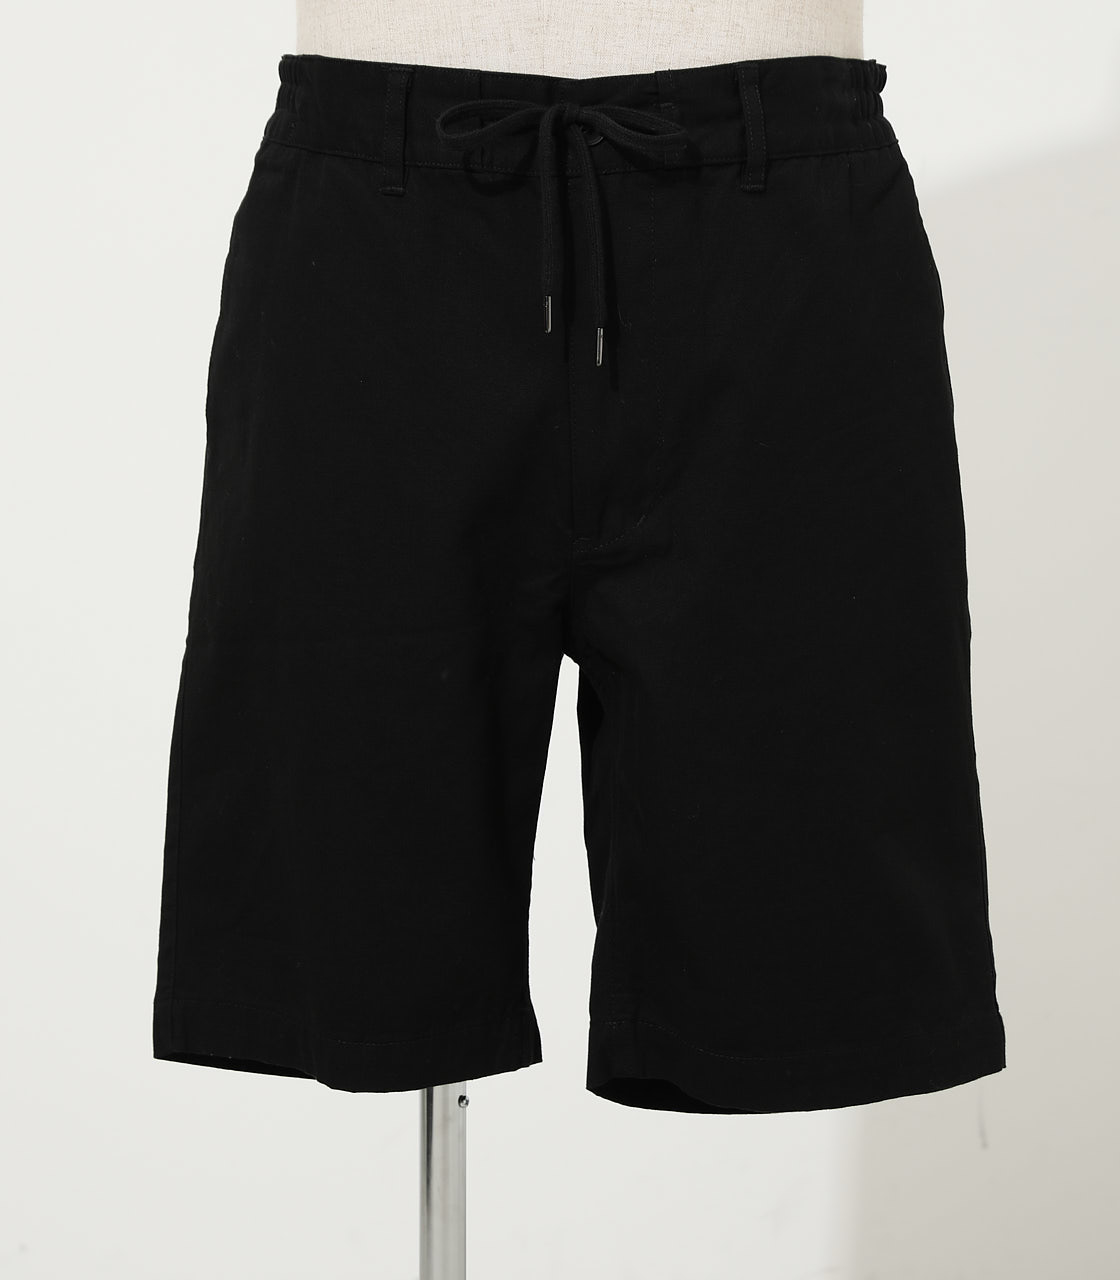 TWILL COLOR SHORTS 詳細画像 BLK 2